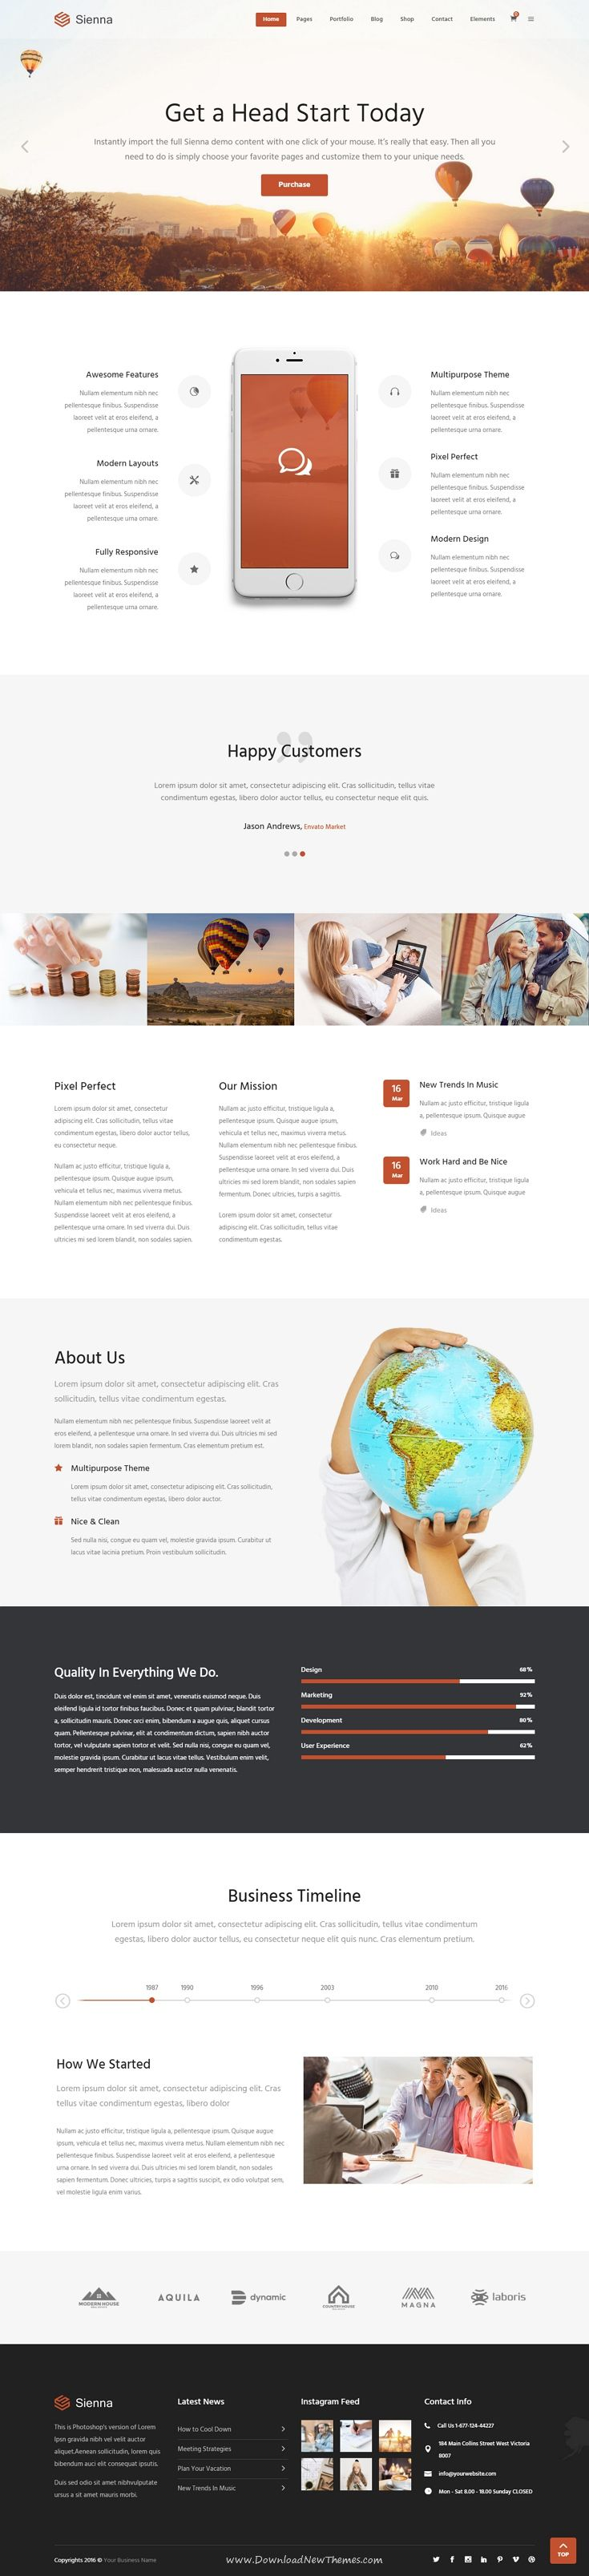 Sienna - Professional All-Purpose Business Theme. Everything you need for your business website form practical features to innovative elements, great plugin compatibility and more.